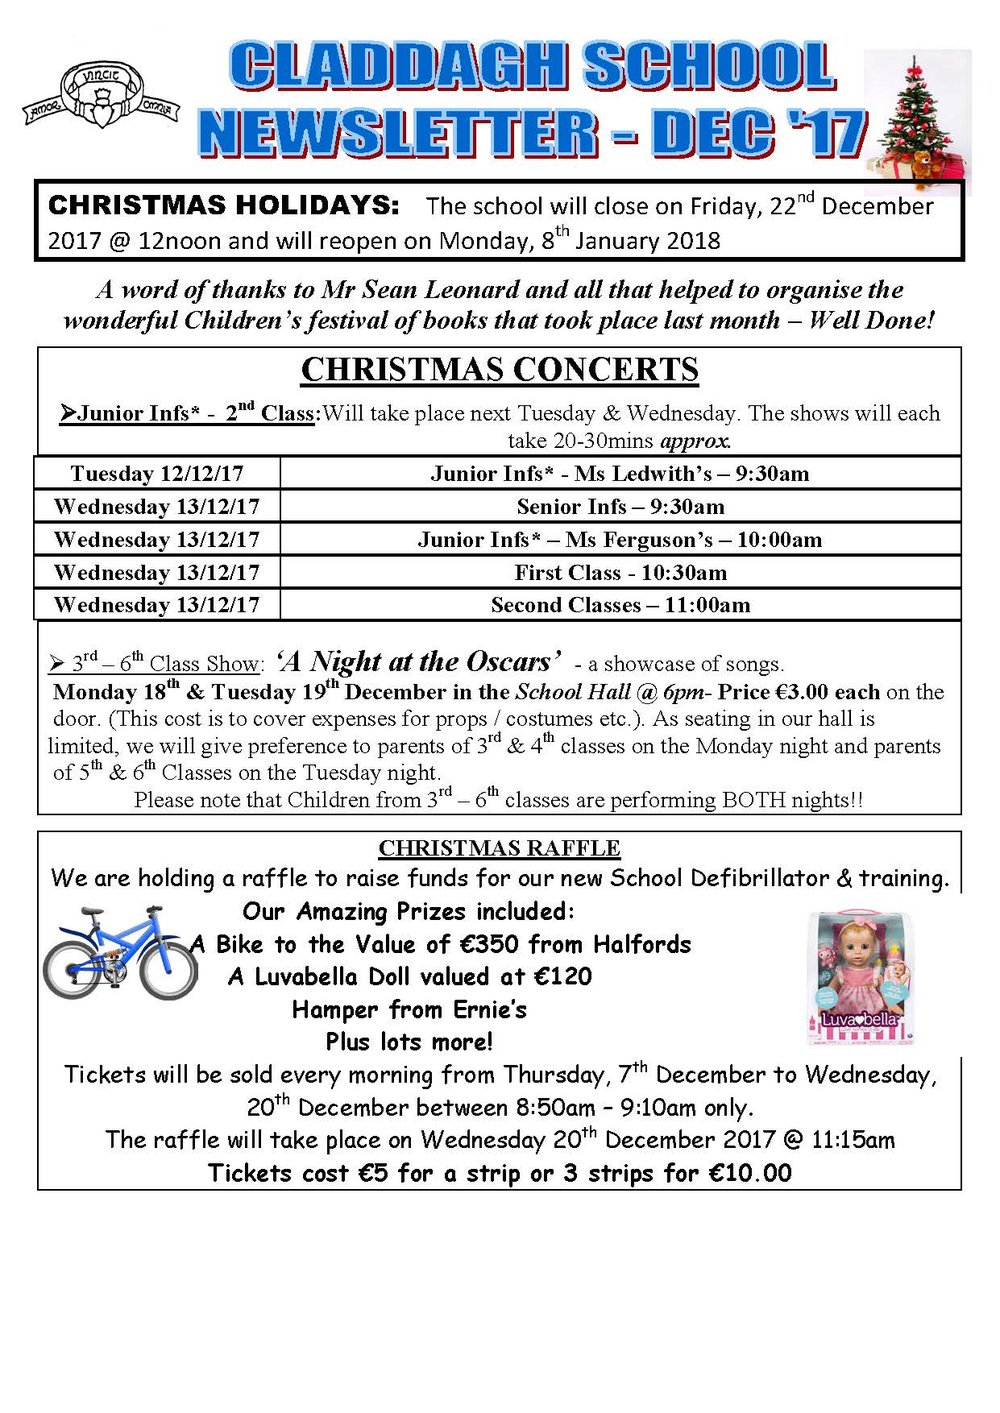 Christmas Newsletter Concerts A Raffle And Holidays Claddagh National School Galway